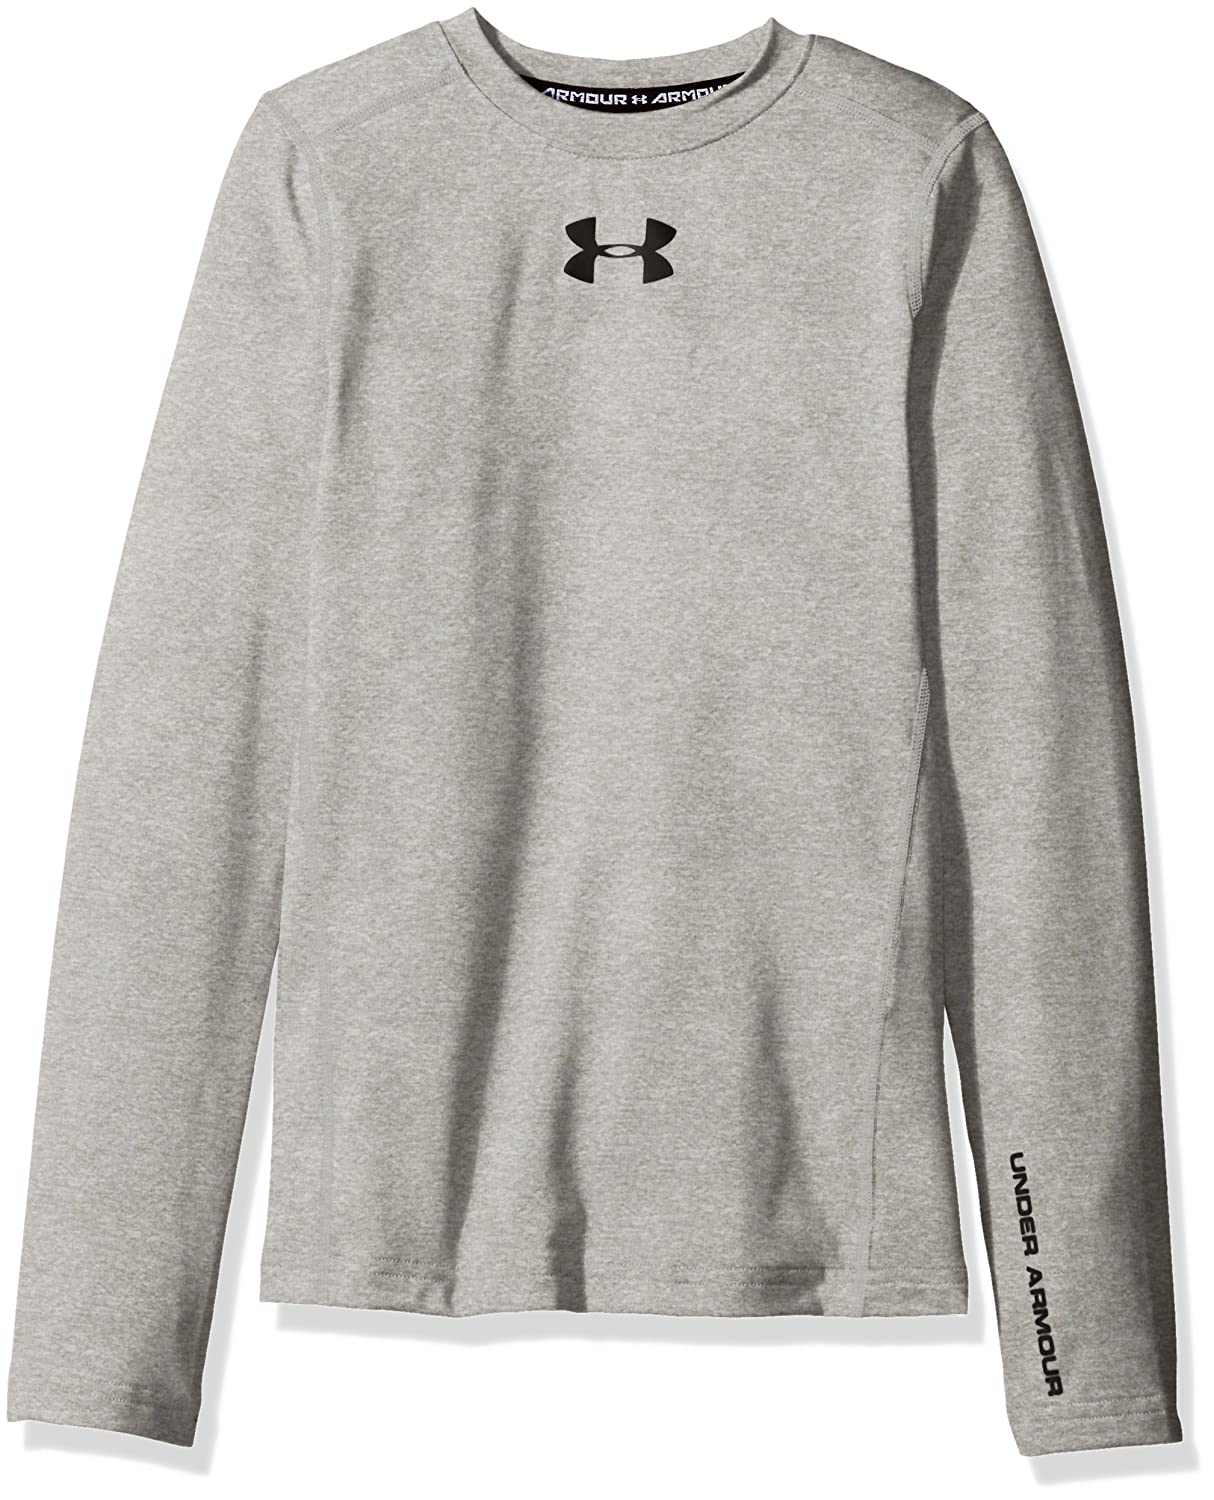 Pitch Gray////Black Under Armour Boys ColdGear Armour Crew Youth